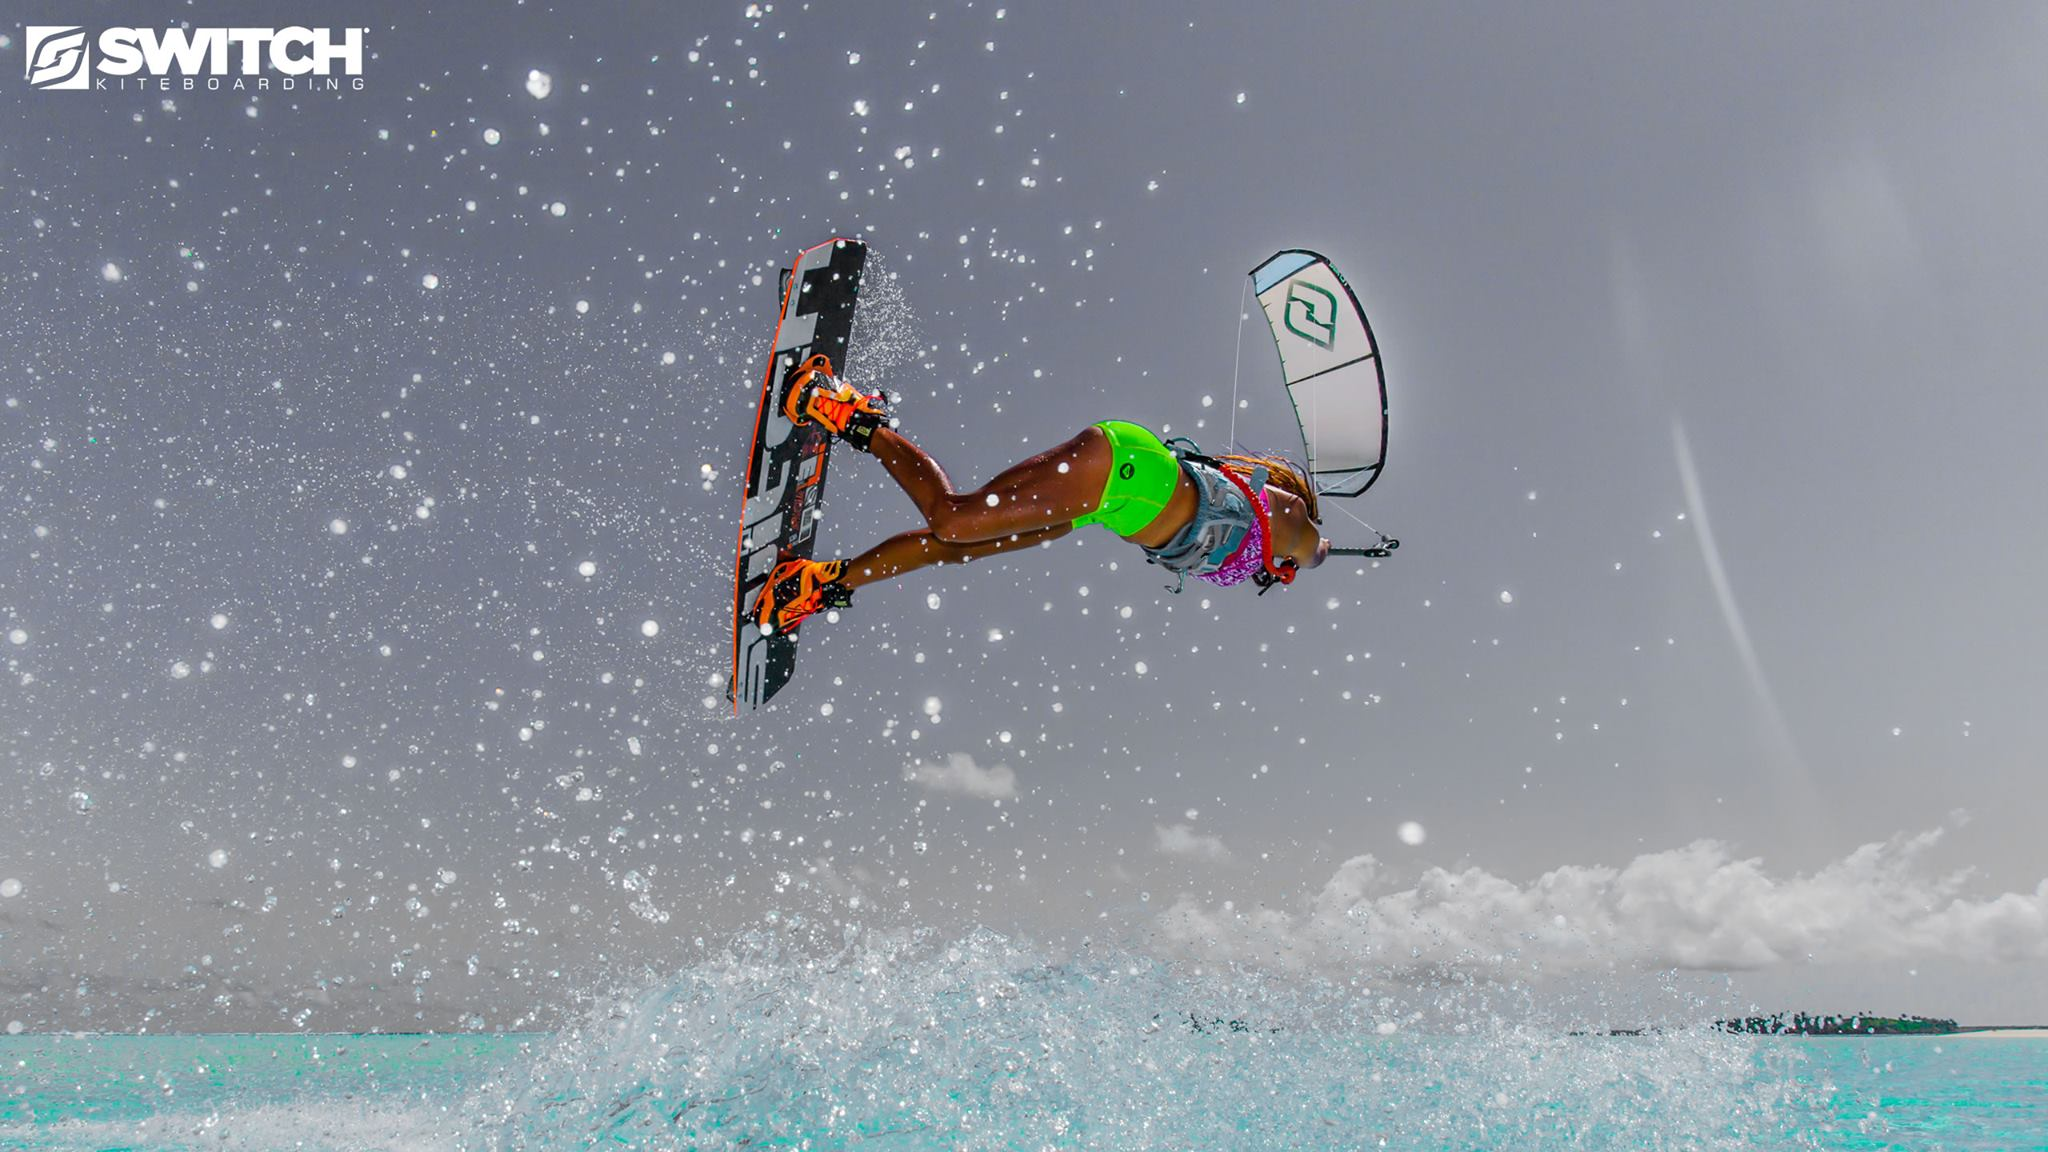 Kitesurf kiteboarding kitesurfing kiteboard women kitesurfer sport photo of the day image images photography Greta-Menardo-universkite.fr